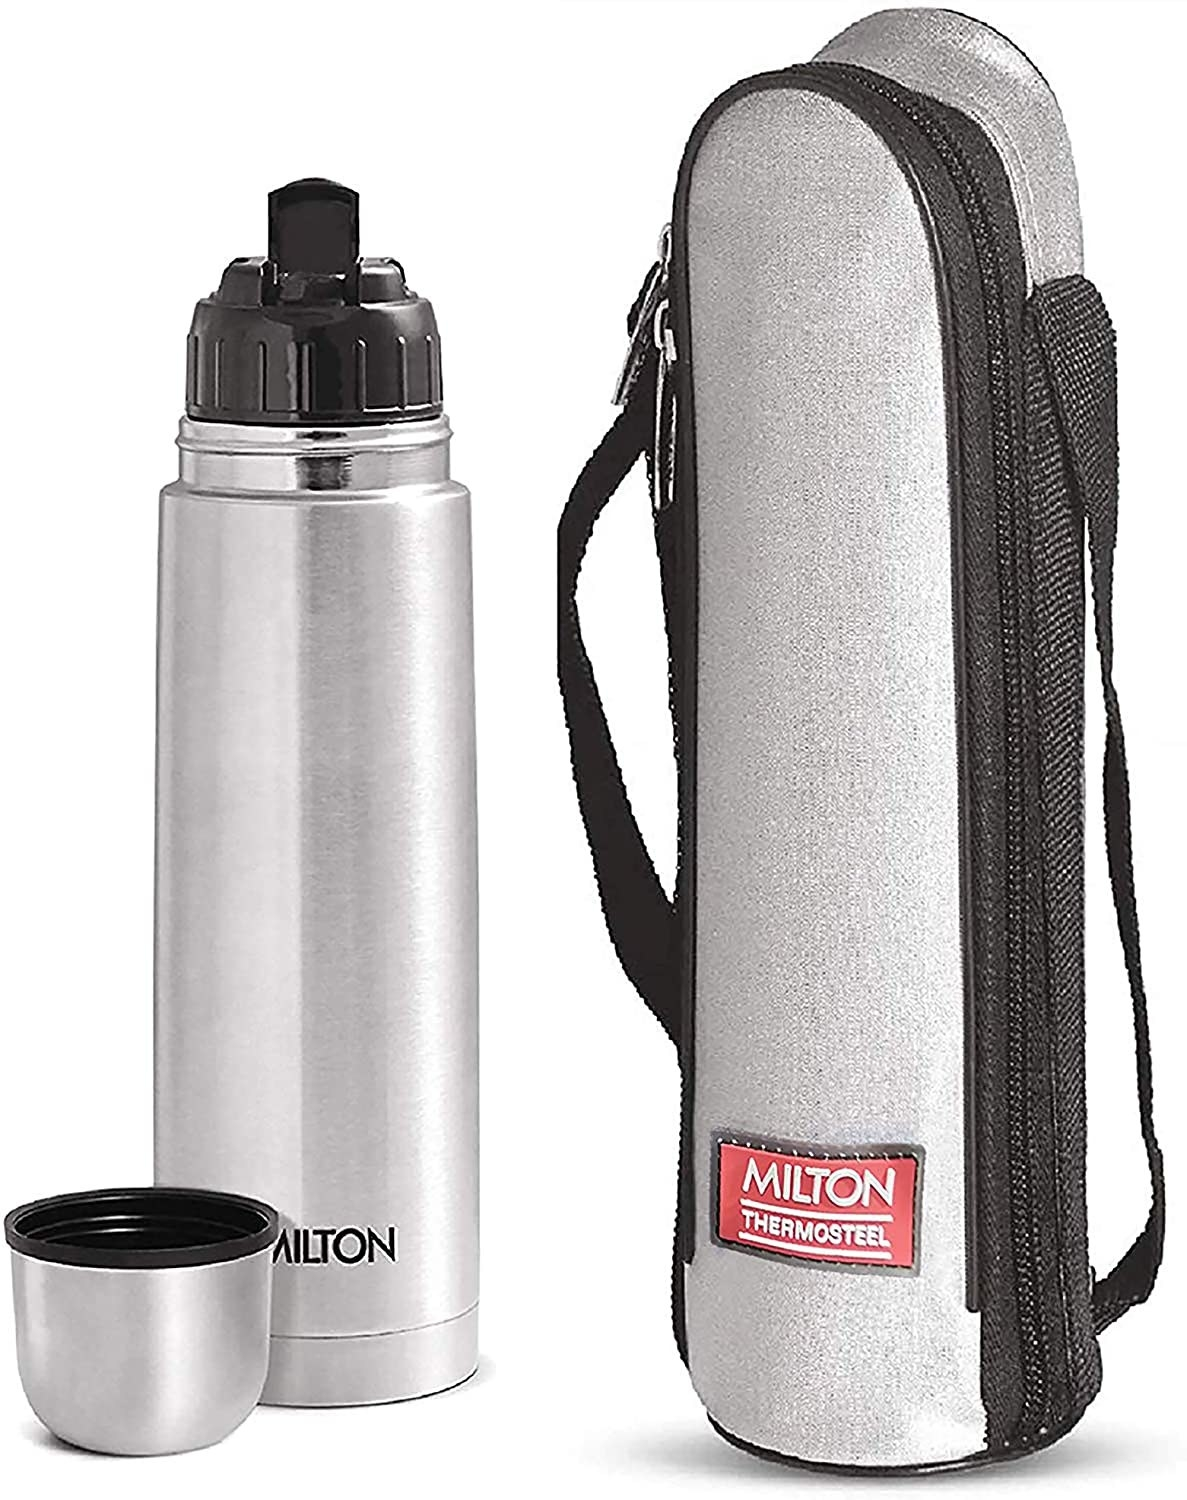 A silver insulated flask next to the packaging